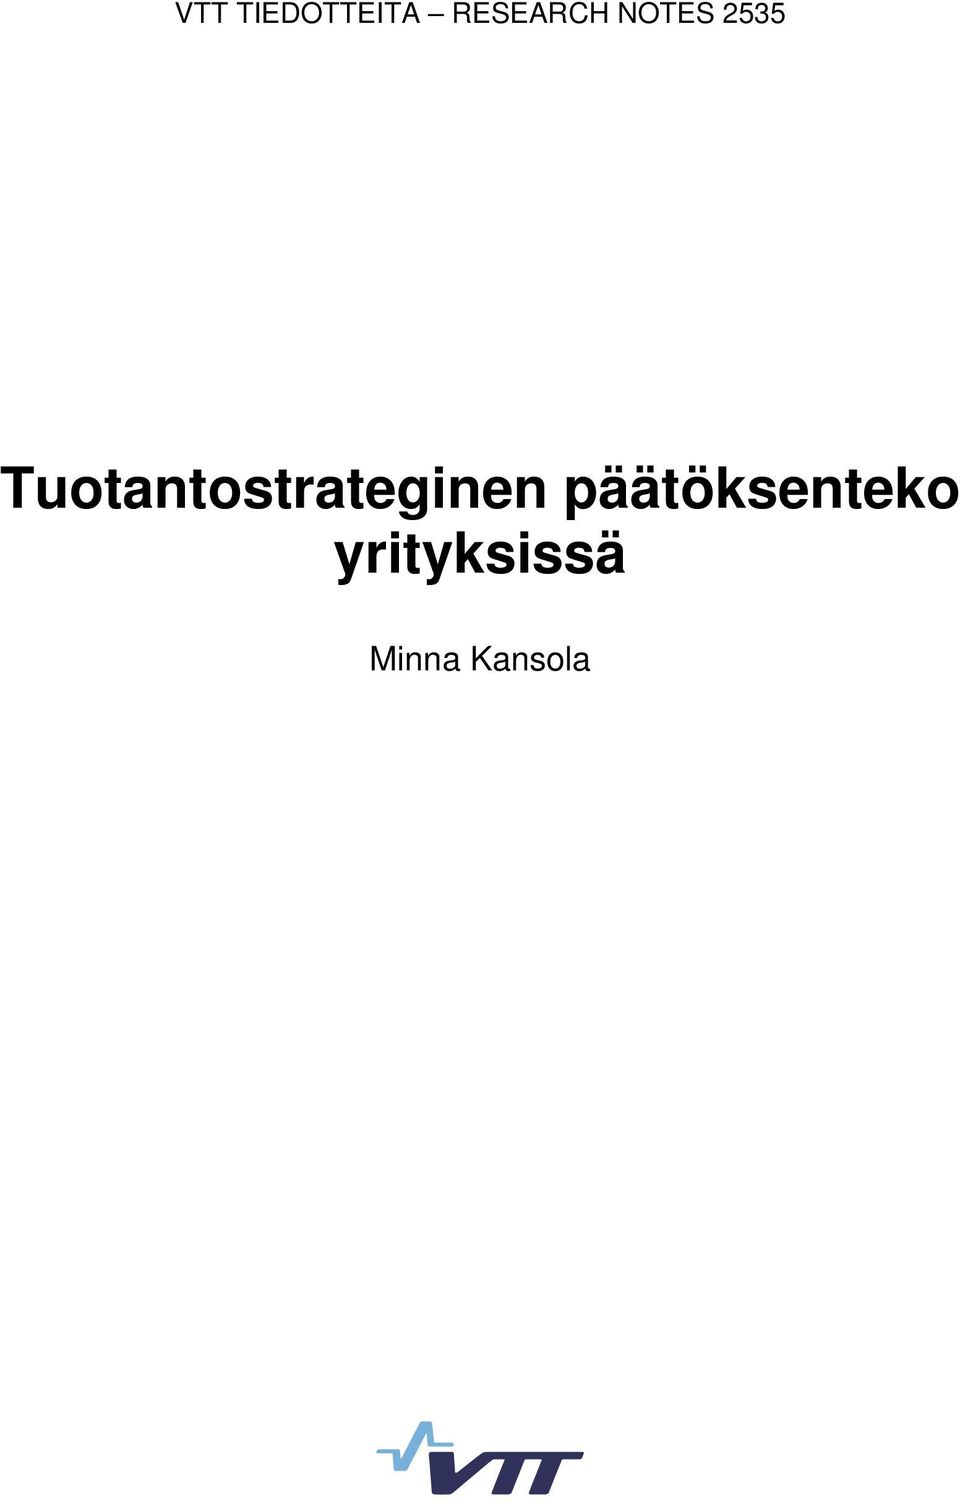 Tuotantostrateginen